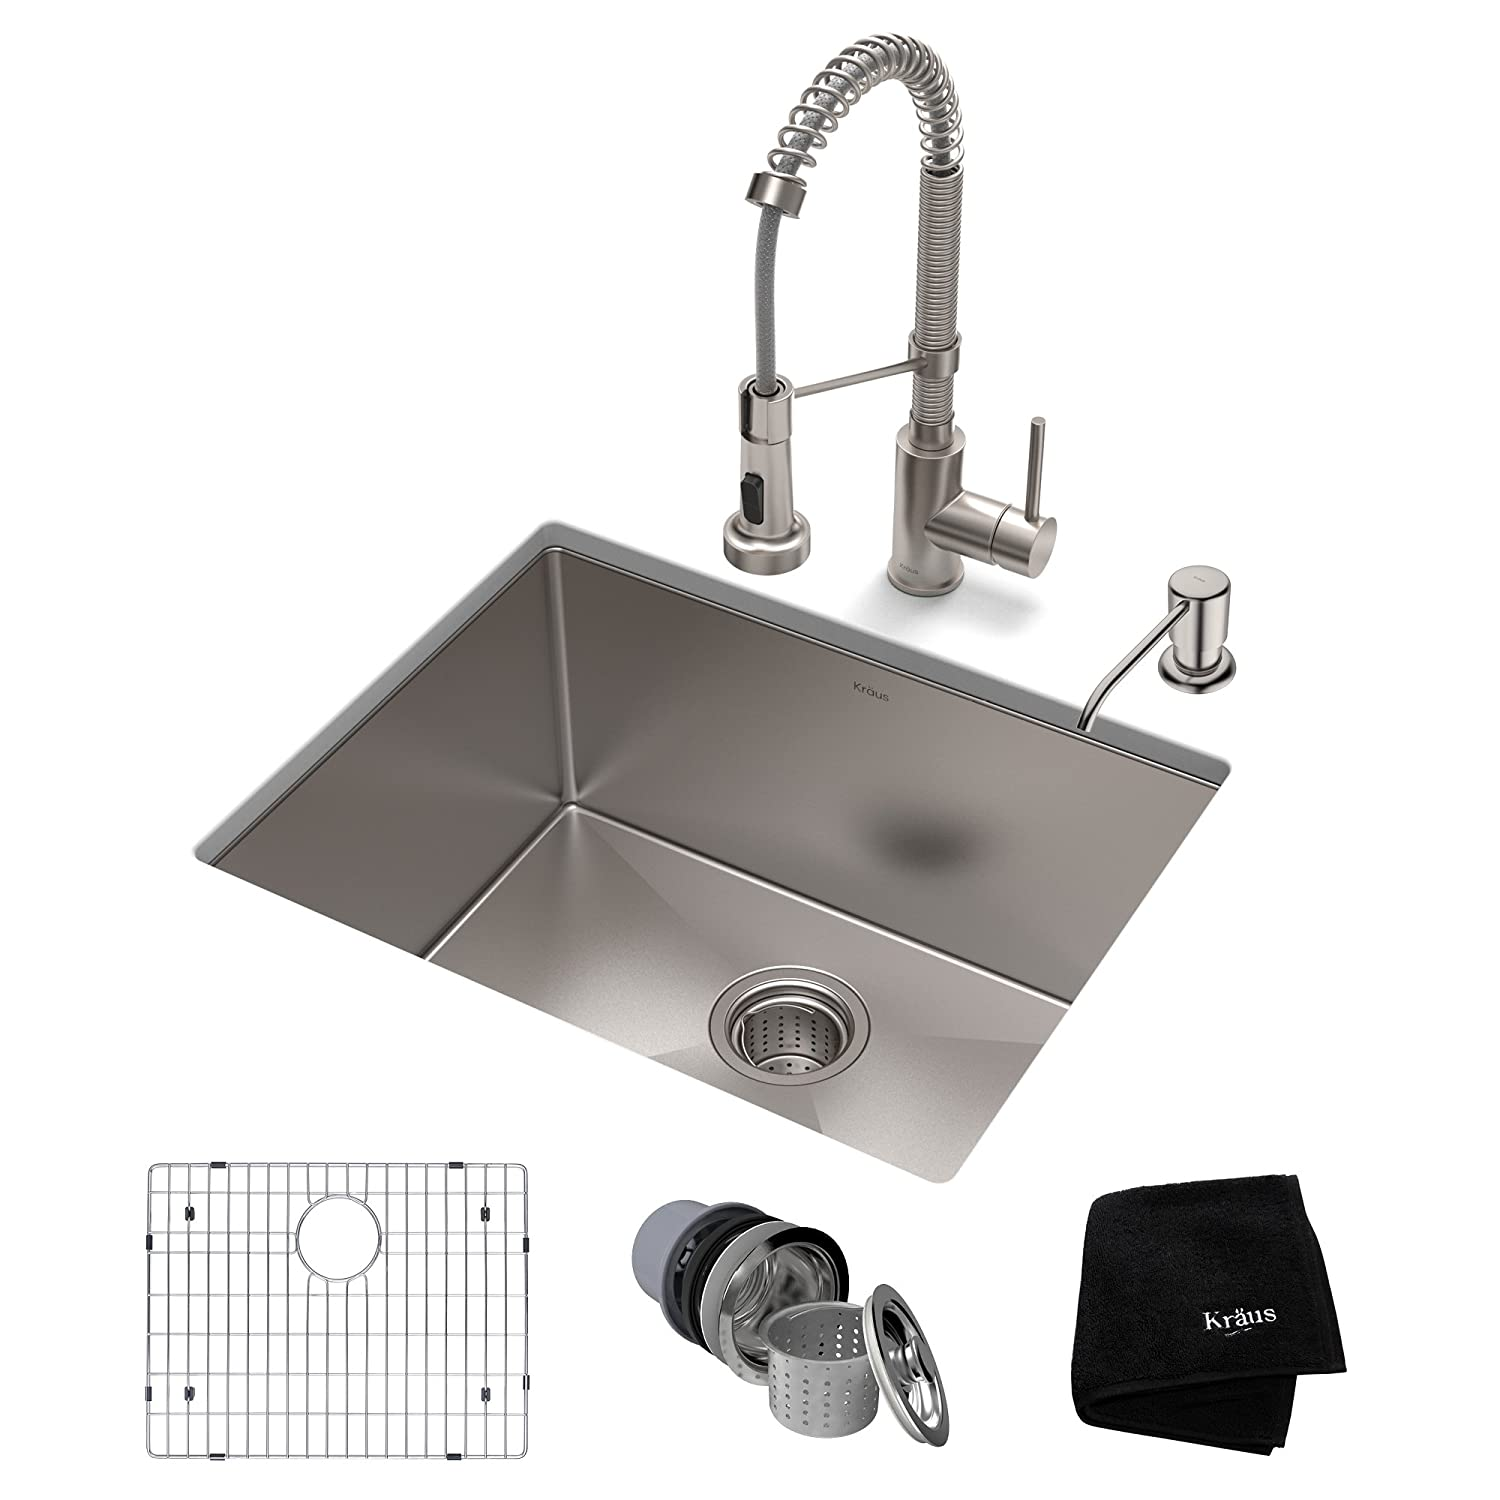 KRAUS KHU101-23-1610-53SS Set with Standart PRO Sink and Bolden Commercial Pull Faucet in Stainless Steel Kitchen Sink & Faucet Combo 23 Inch